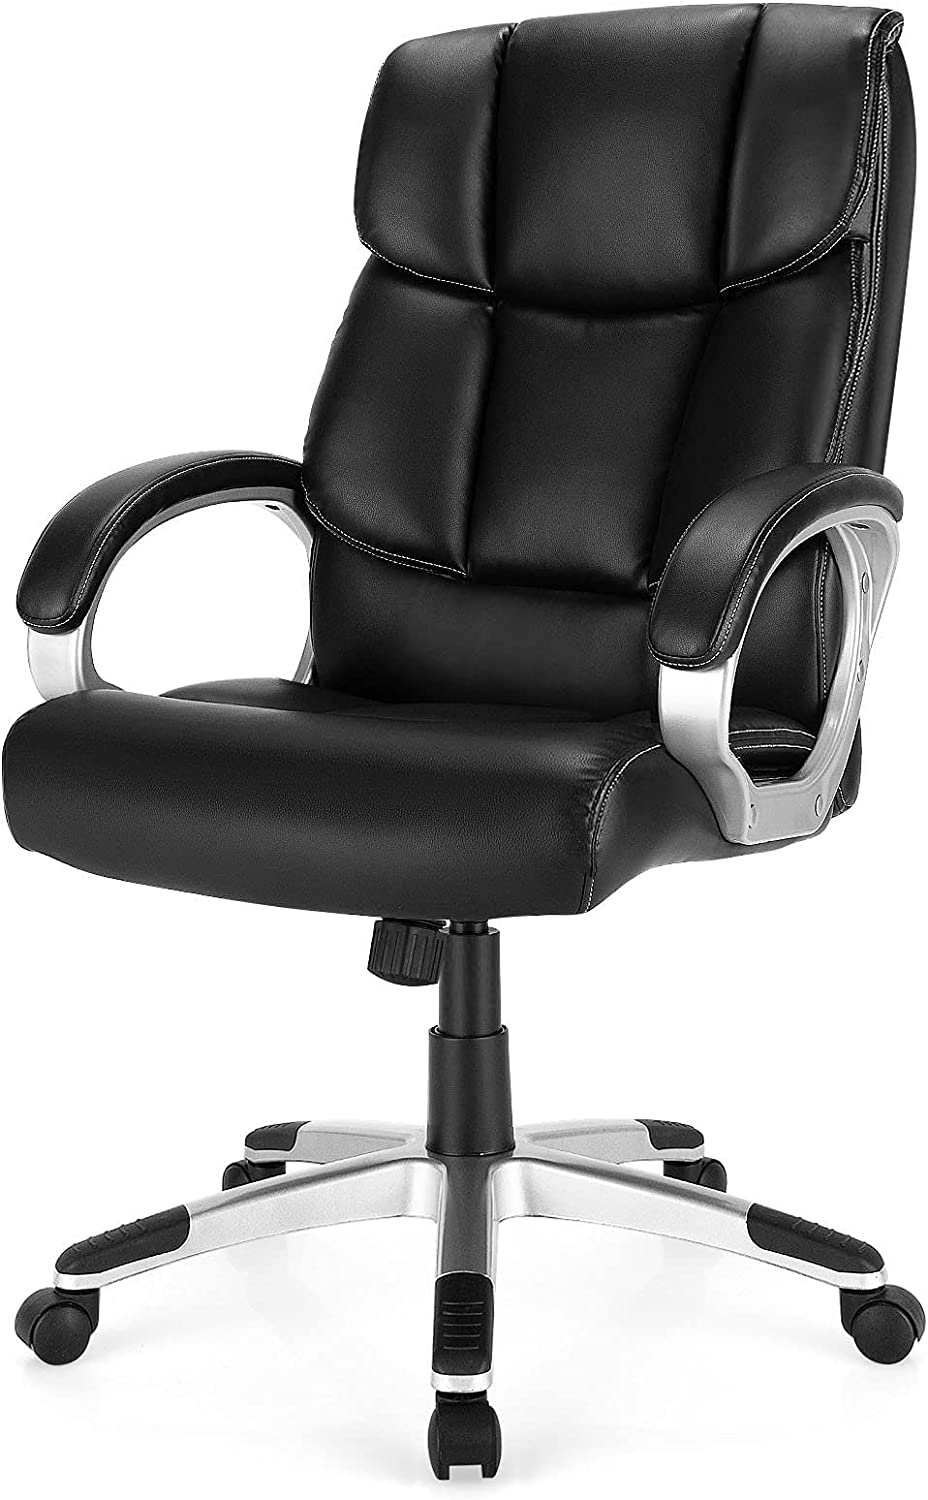 POWERSTONE Big Finally popular brand favorite Tall Executive High-Back Chair Computer Office